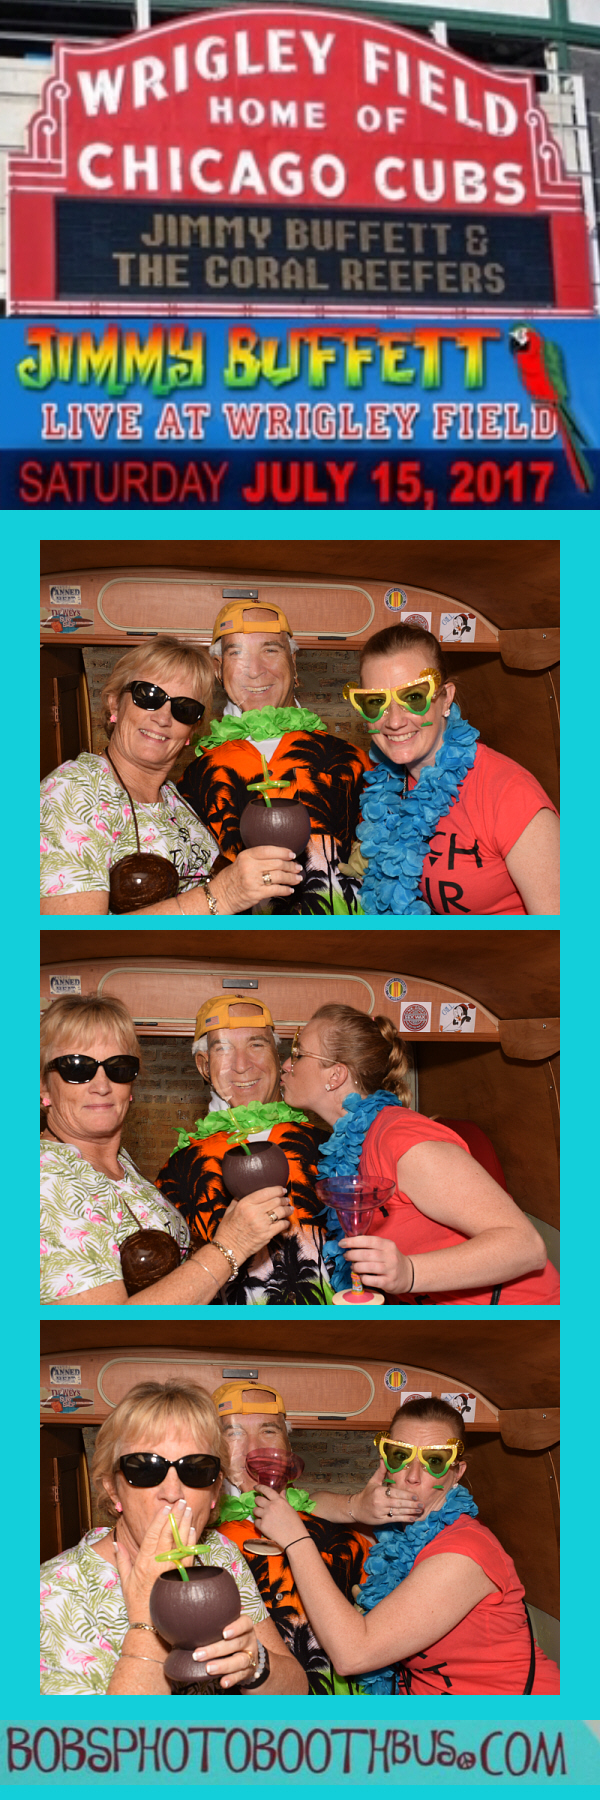 Jimmy Buffett final photo strip graphic_40.jpg